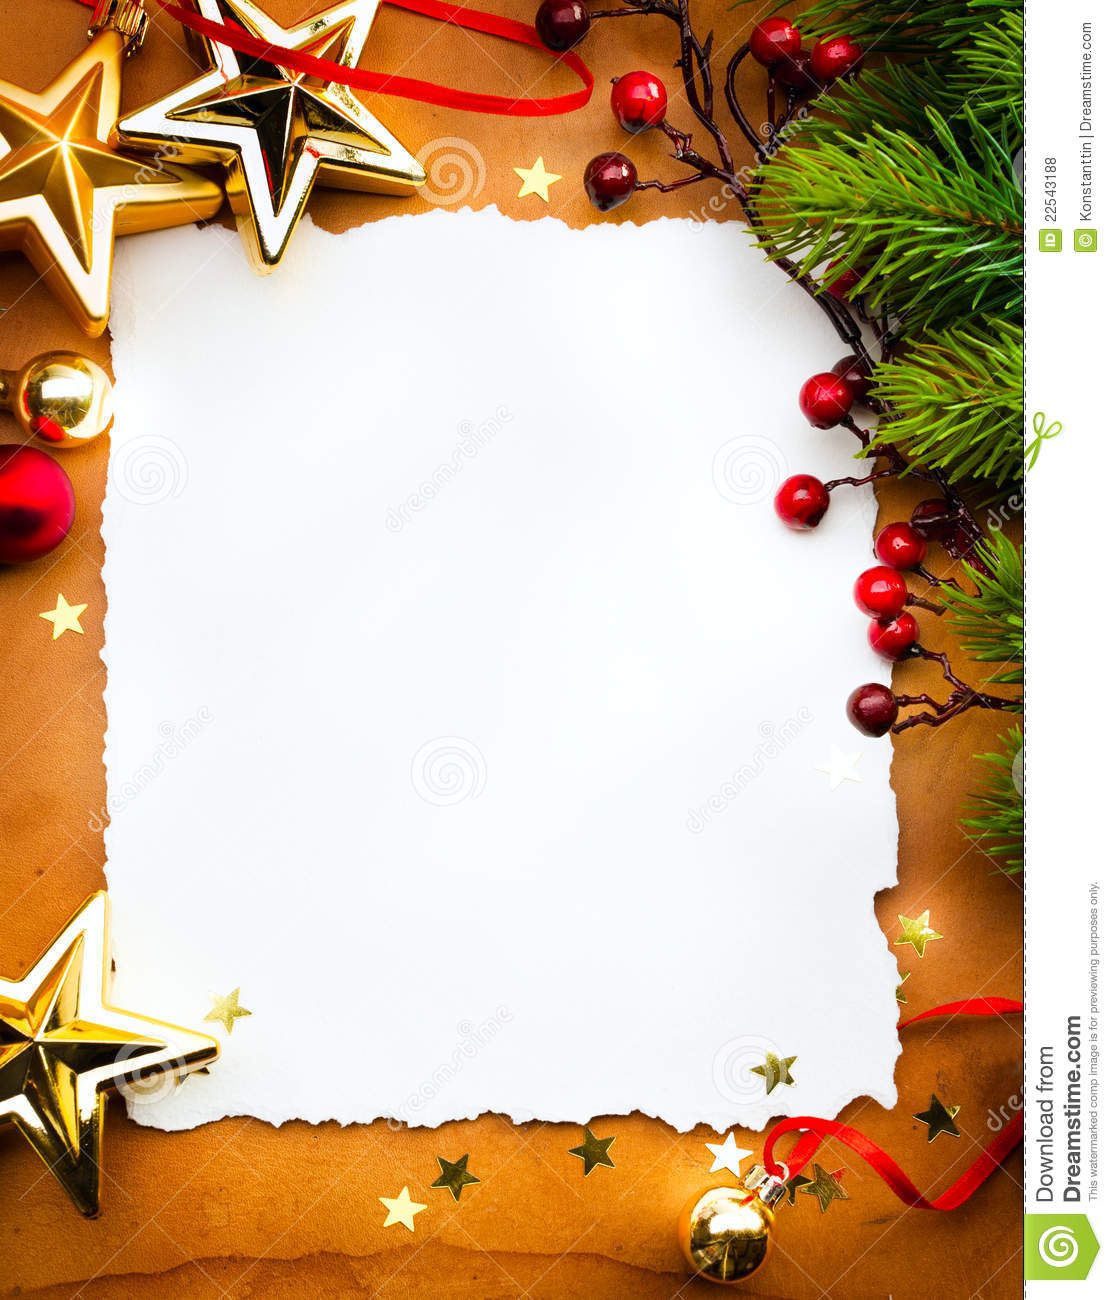 64 Christmas Greetings In Business Letters Christmas In Business